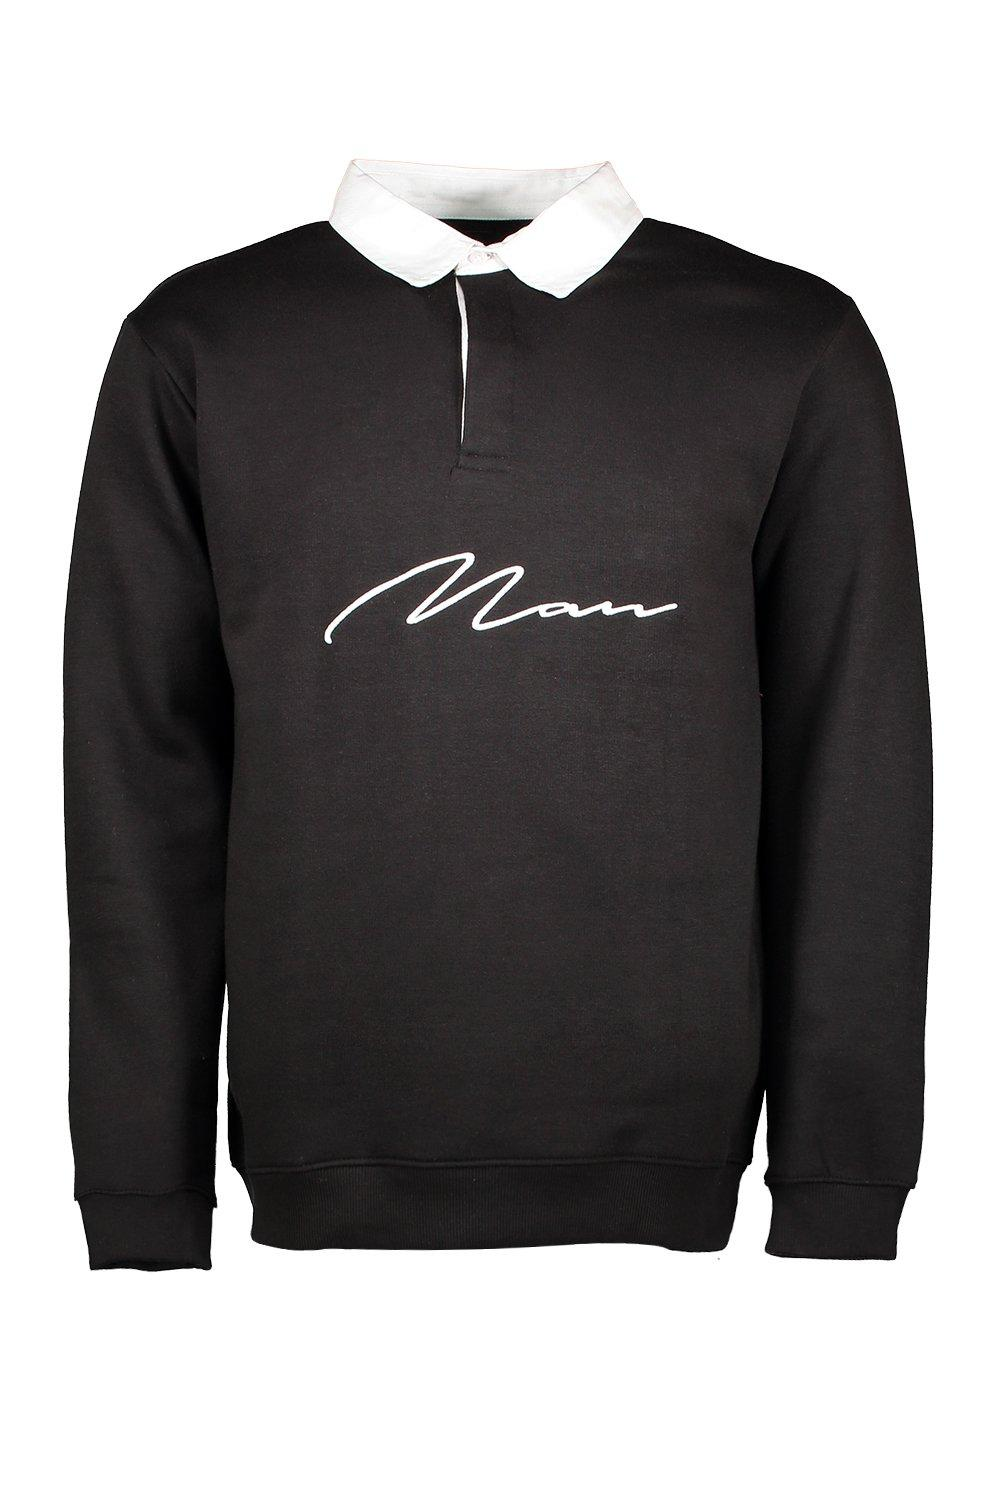 boohooMAN black MAN Signature Embroidered Rugby Sweat